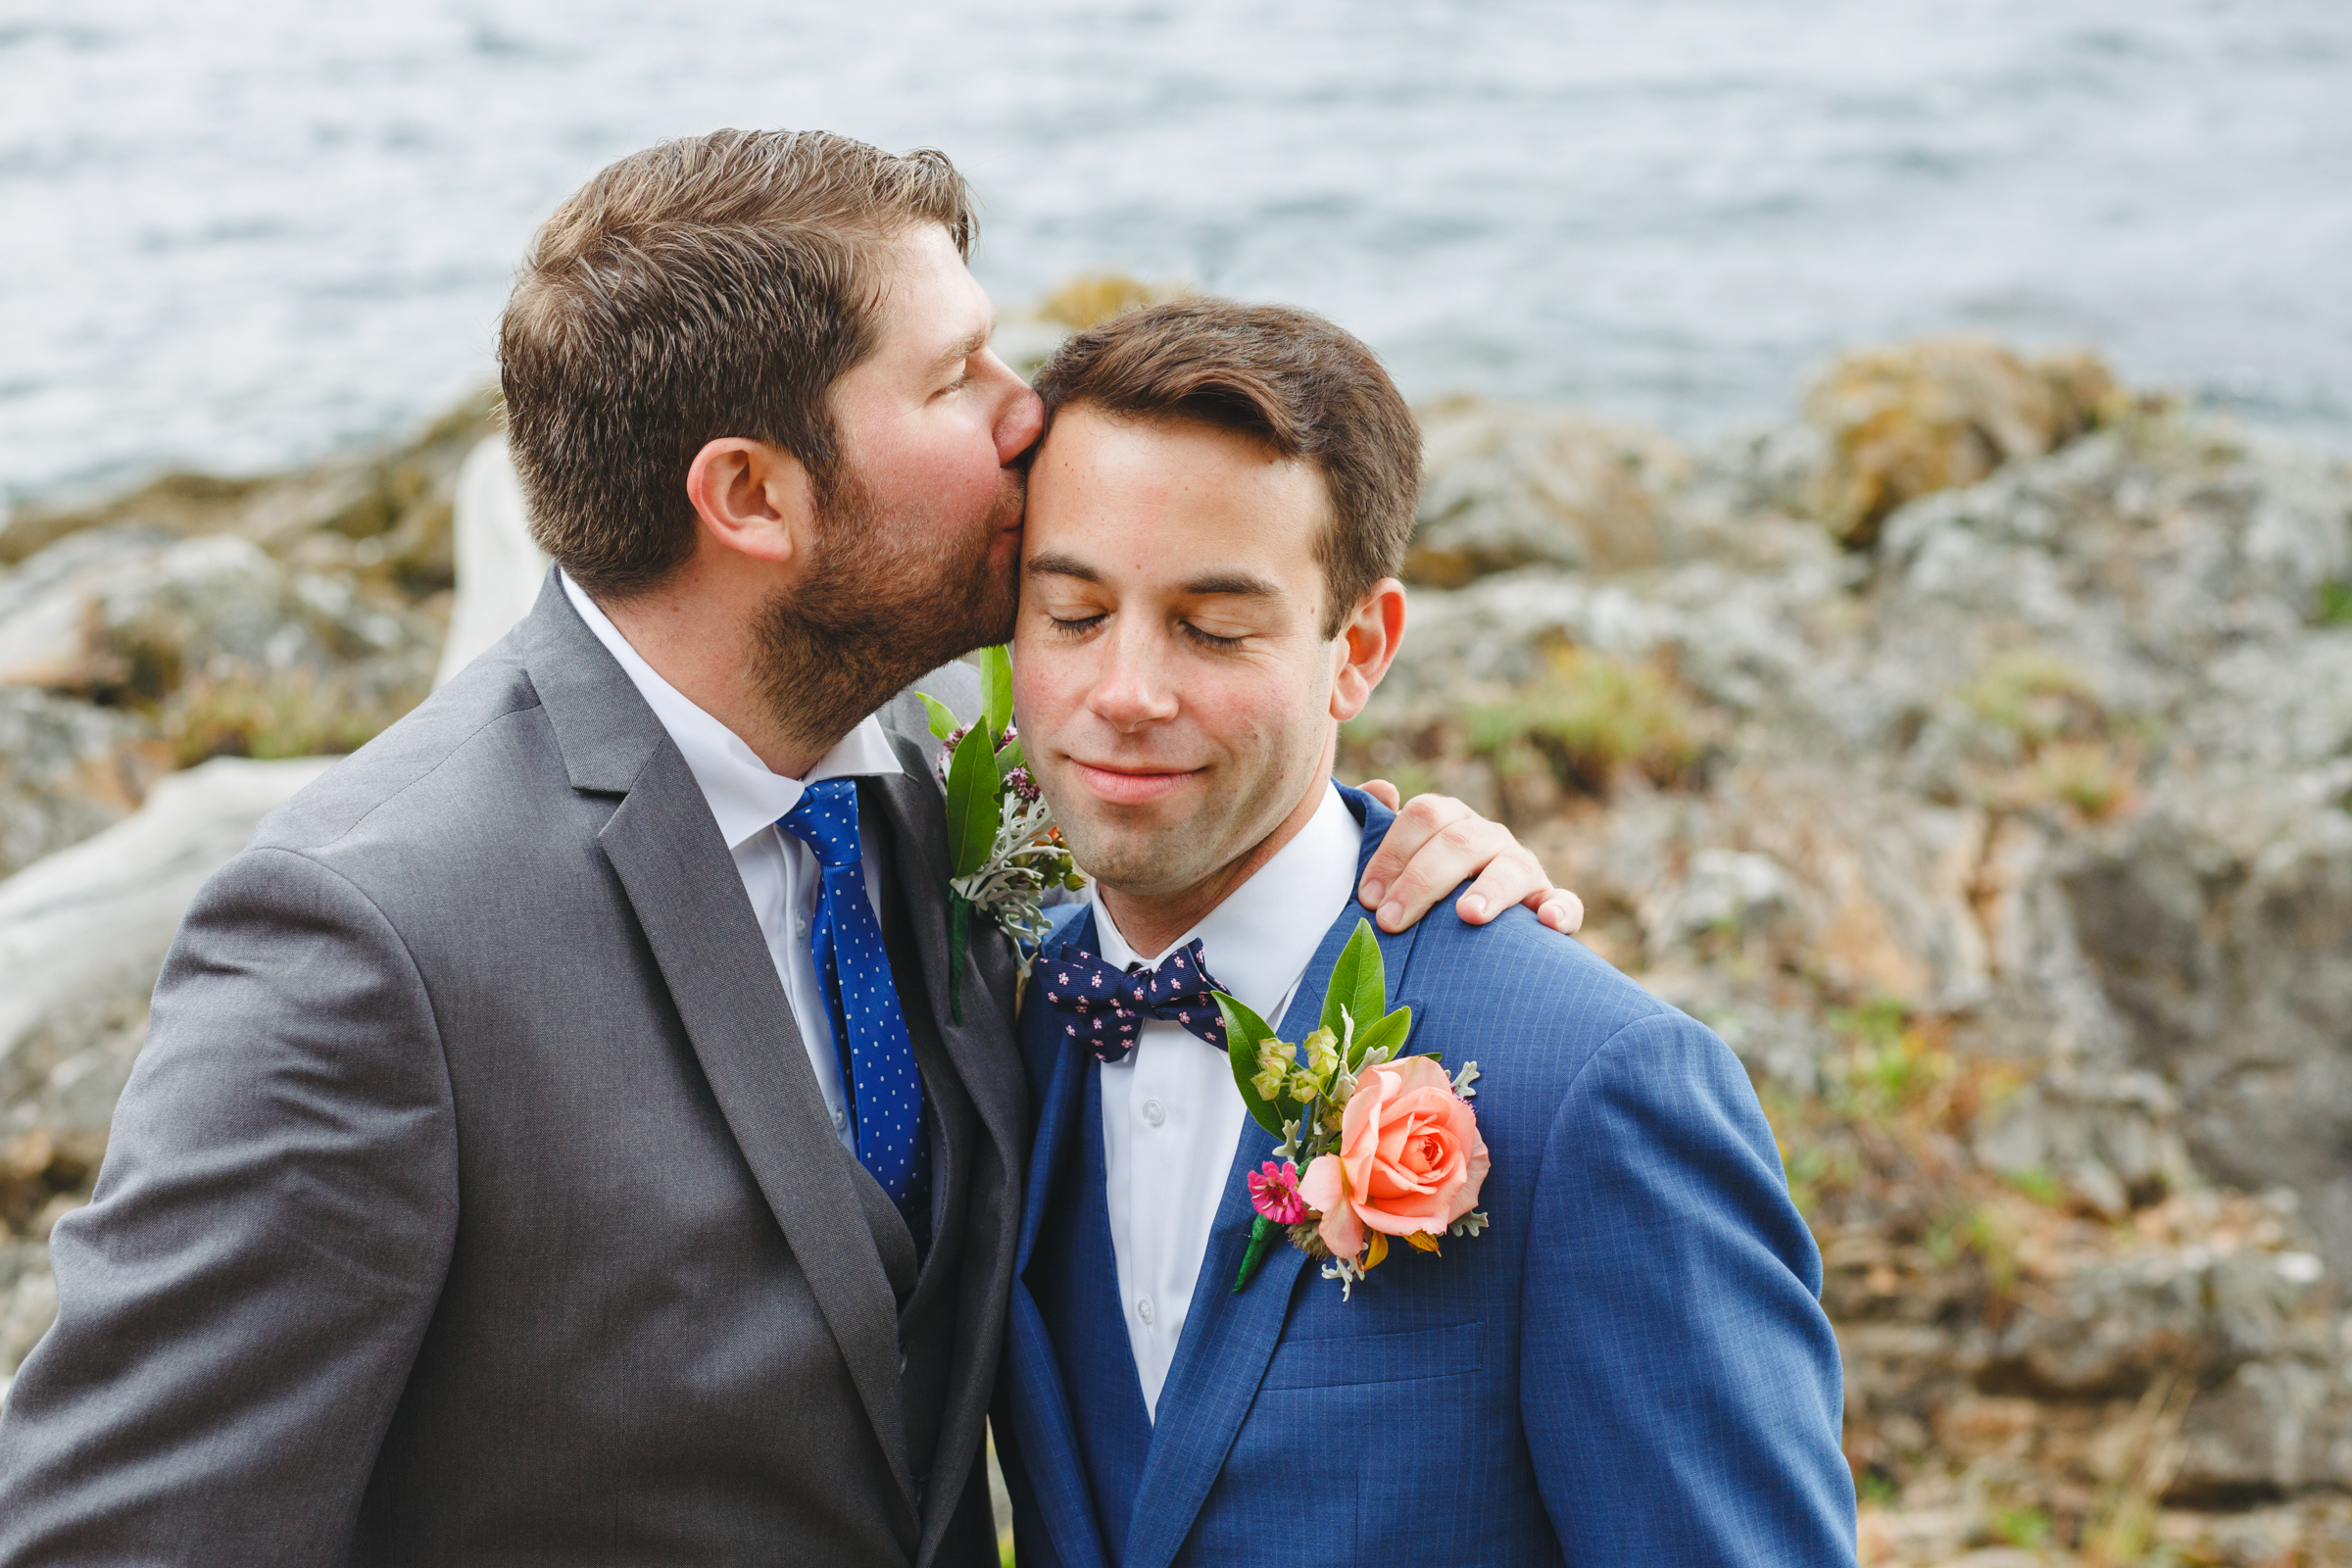 Two grooms on island waterfront - photo by Satya Curcio Photography